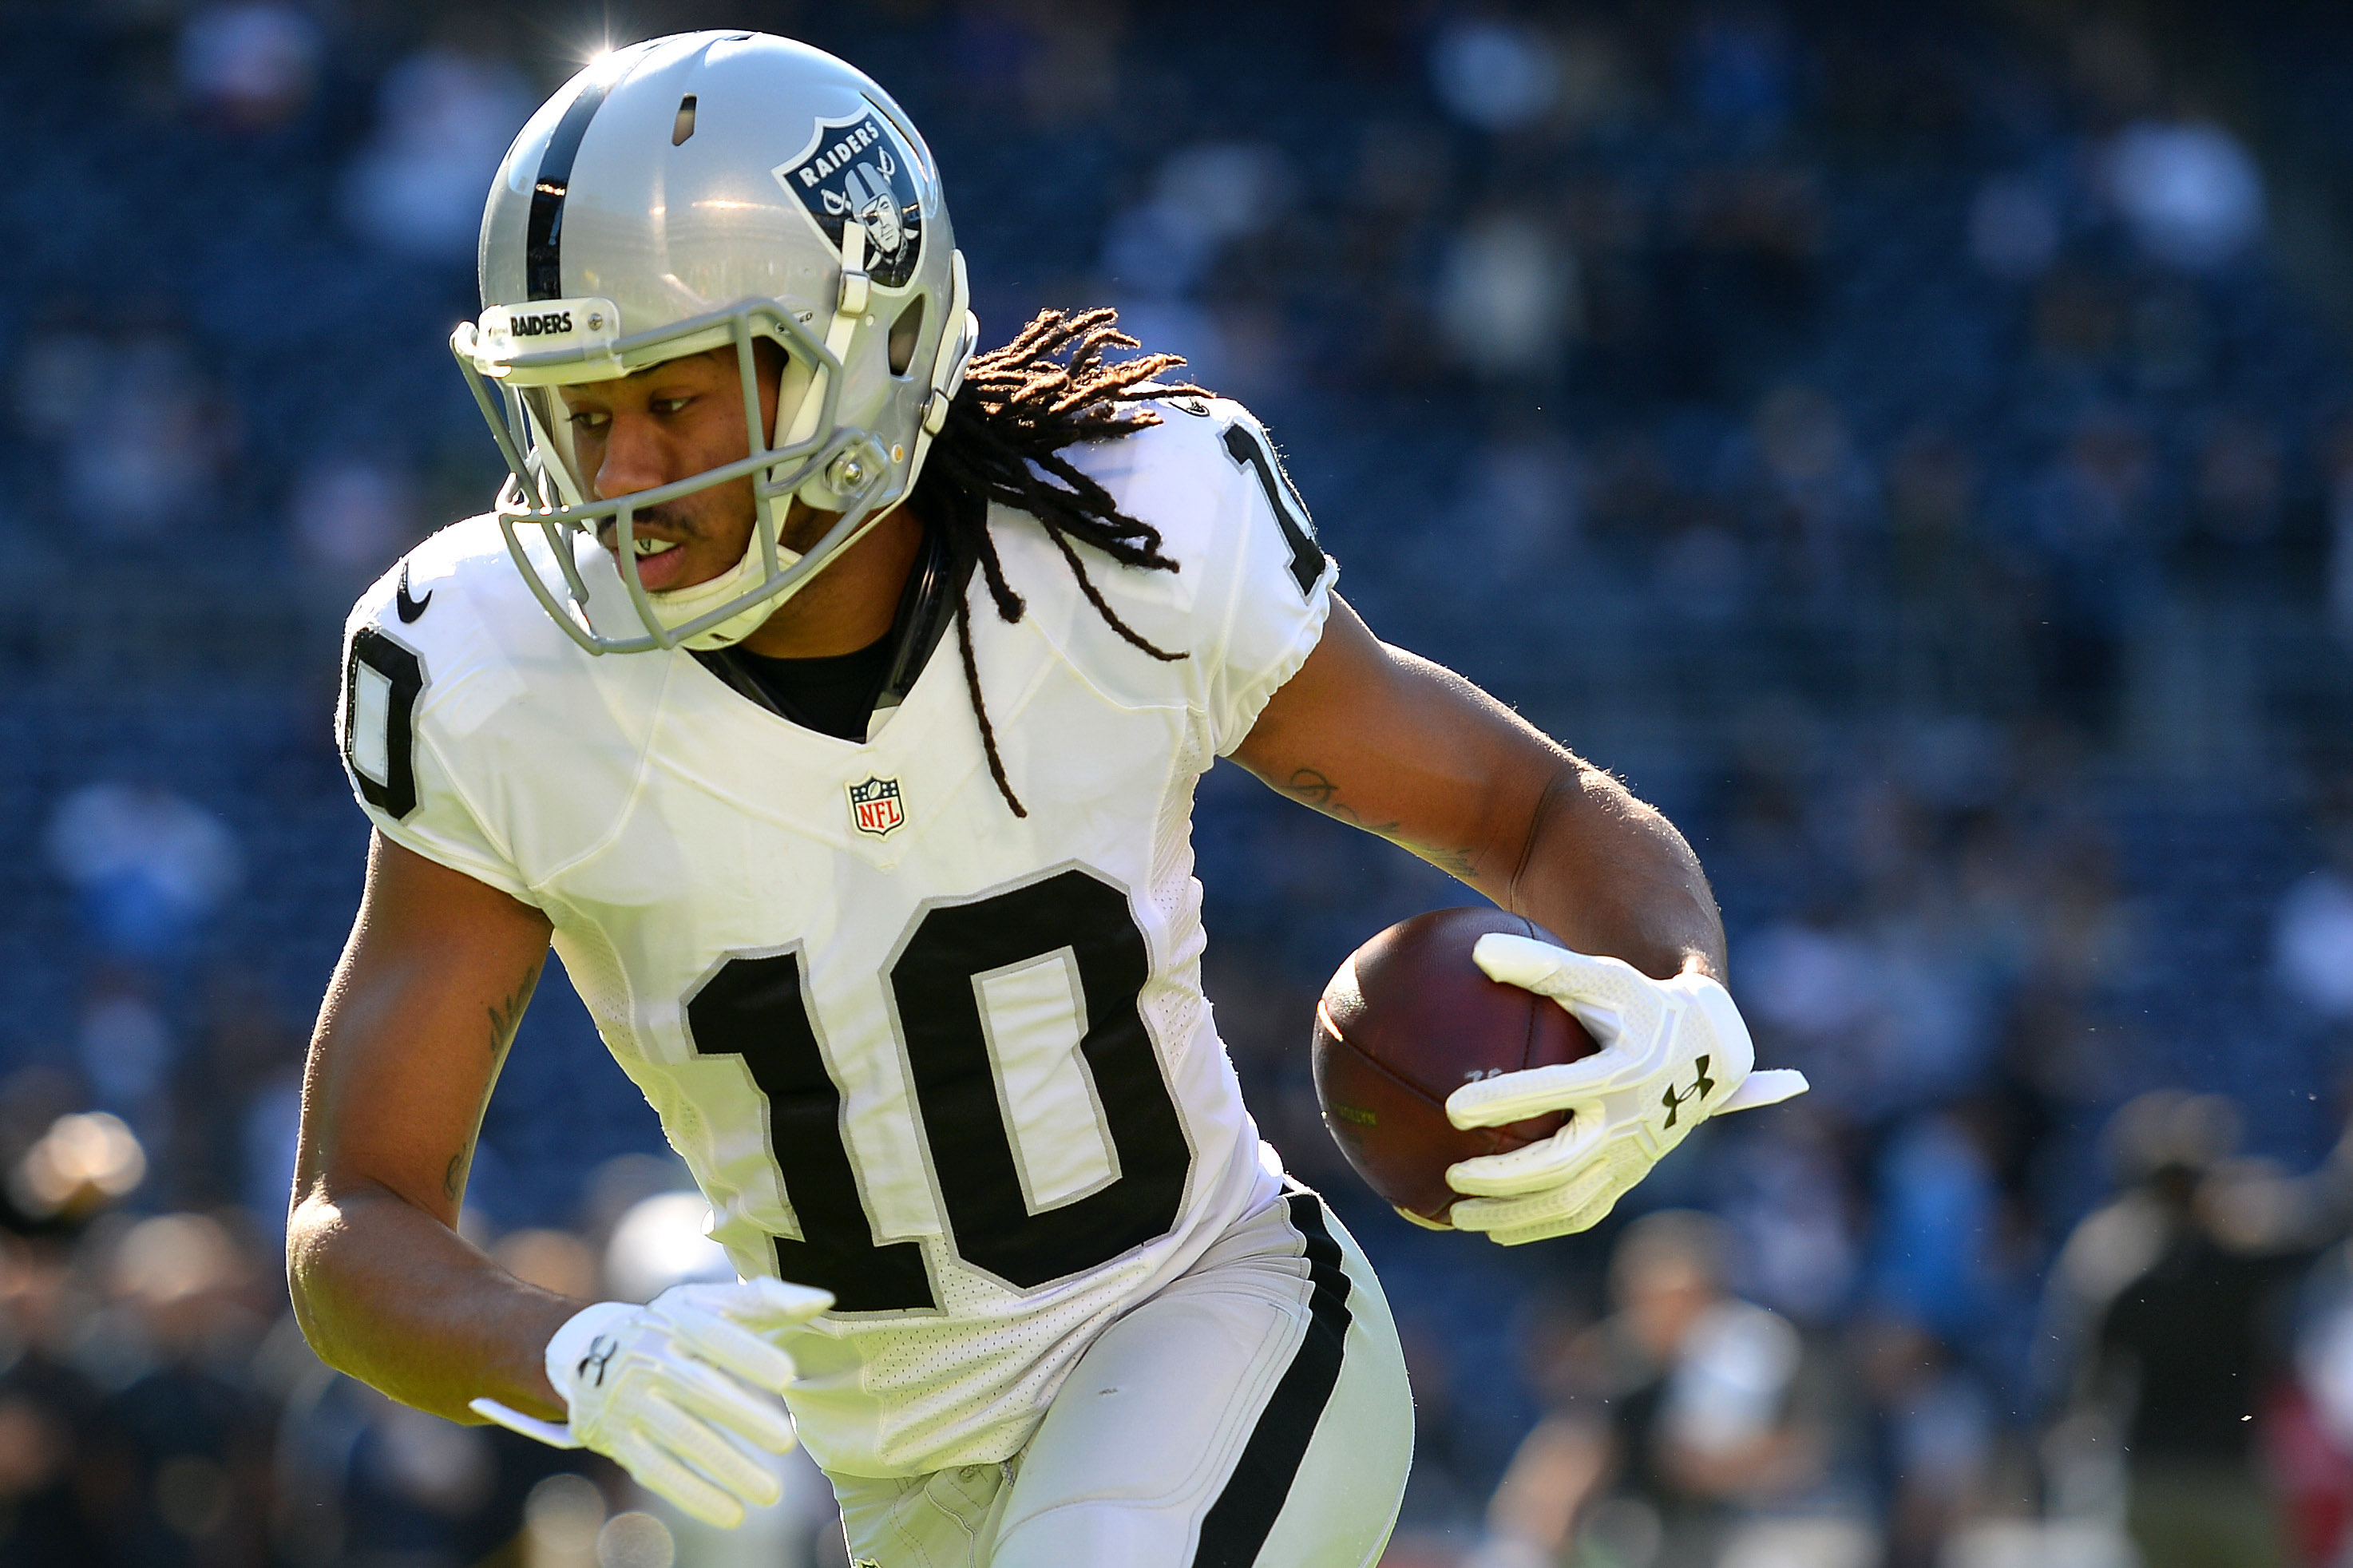 Oakland Raiders: Don't overlook Seth Roberts' contributions